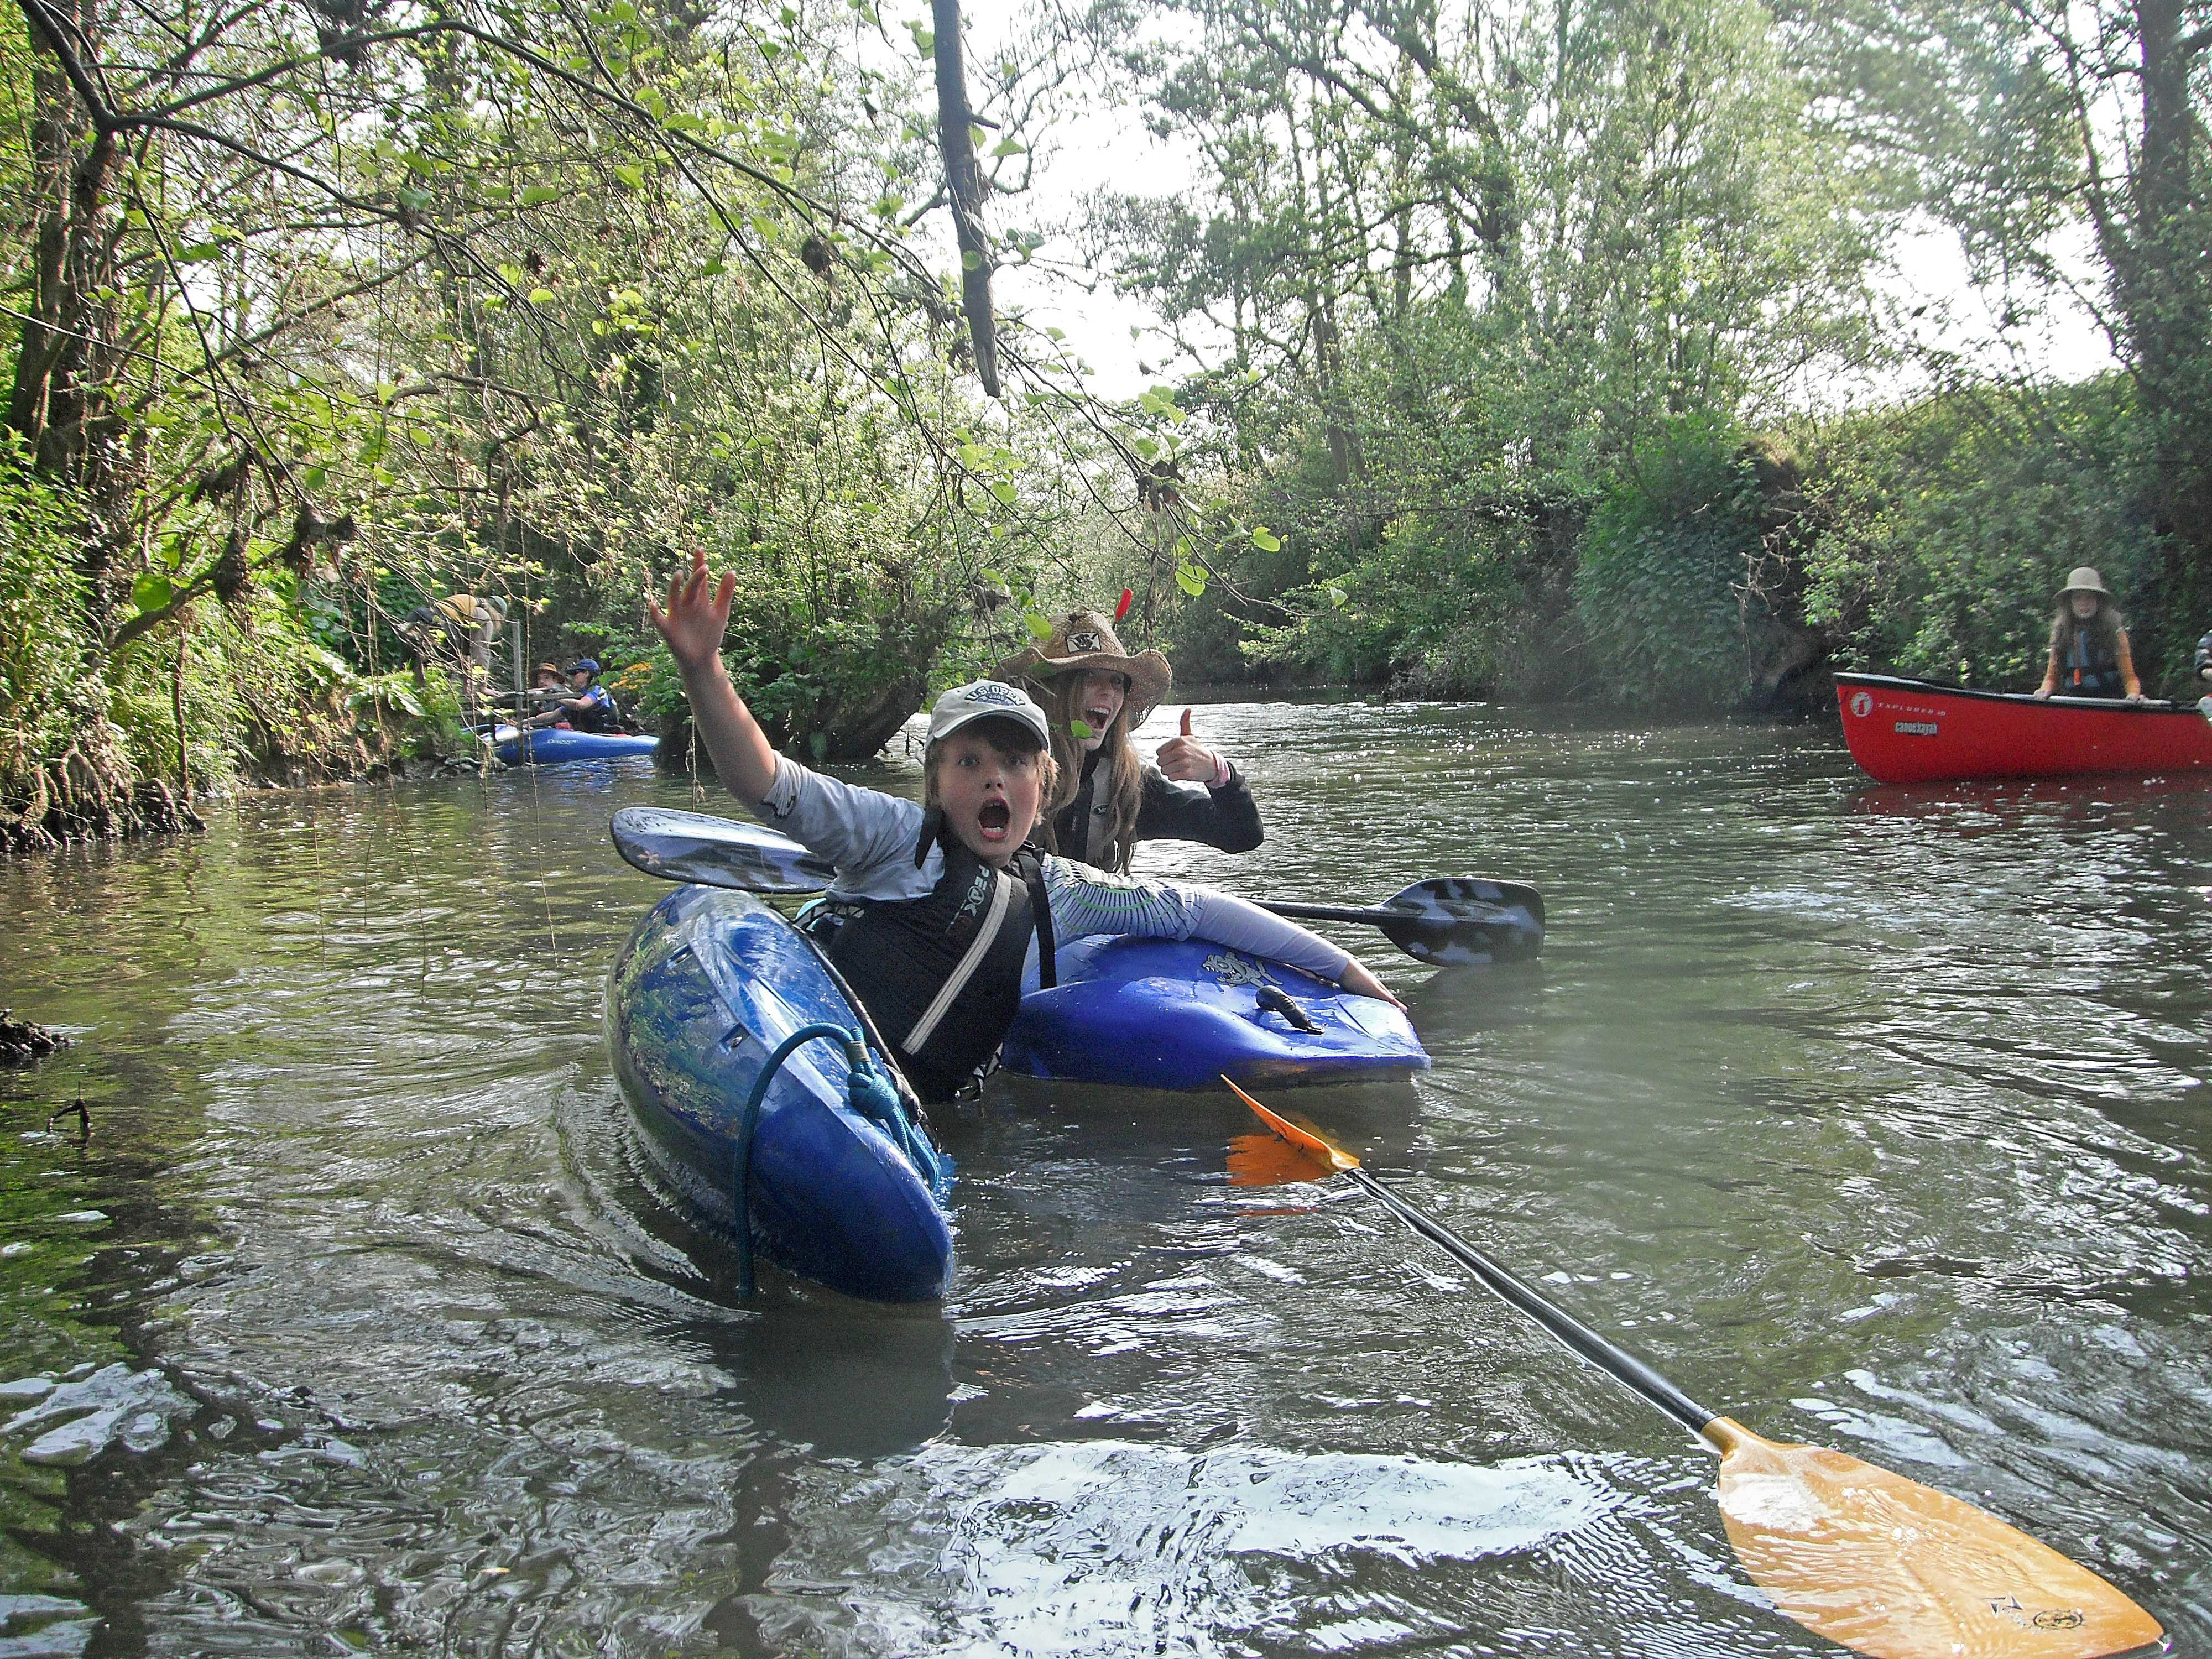 River trip on the Wey